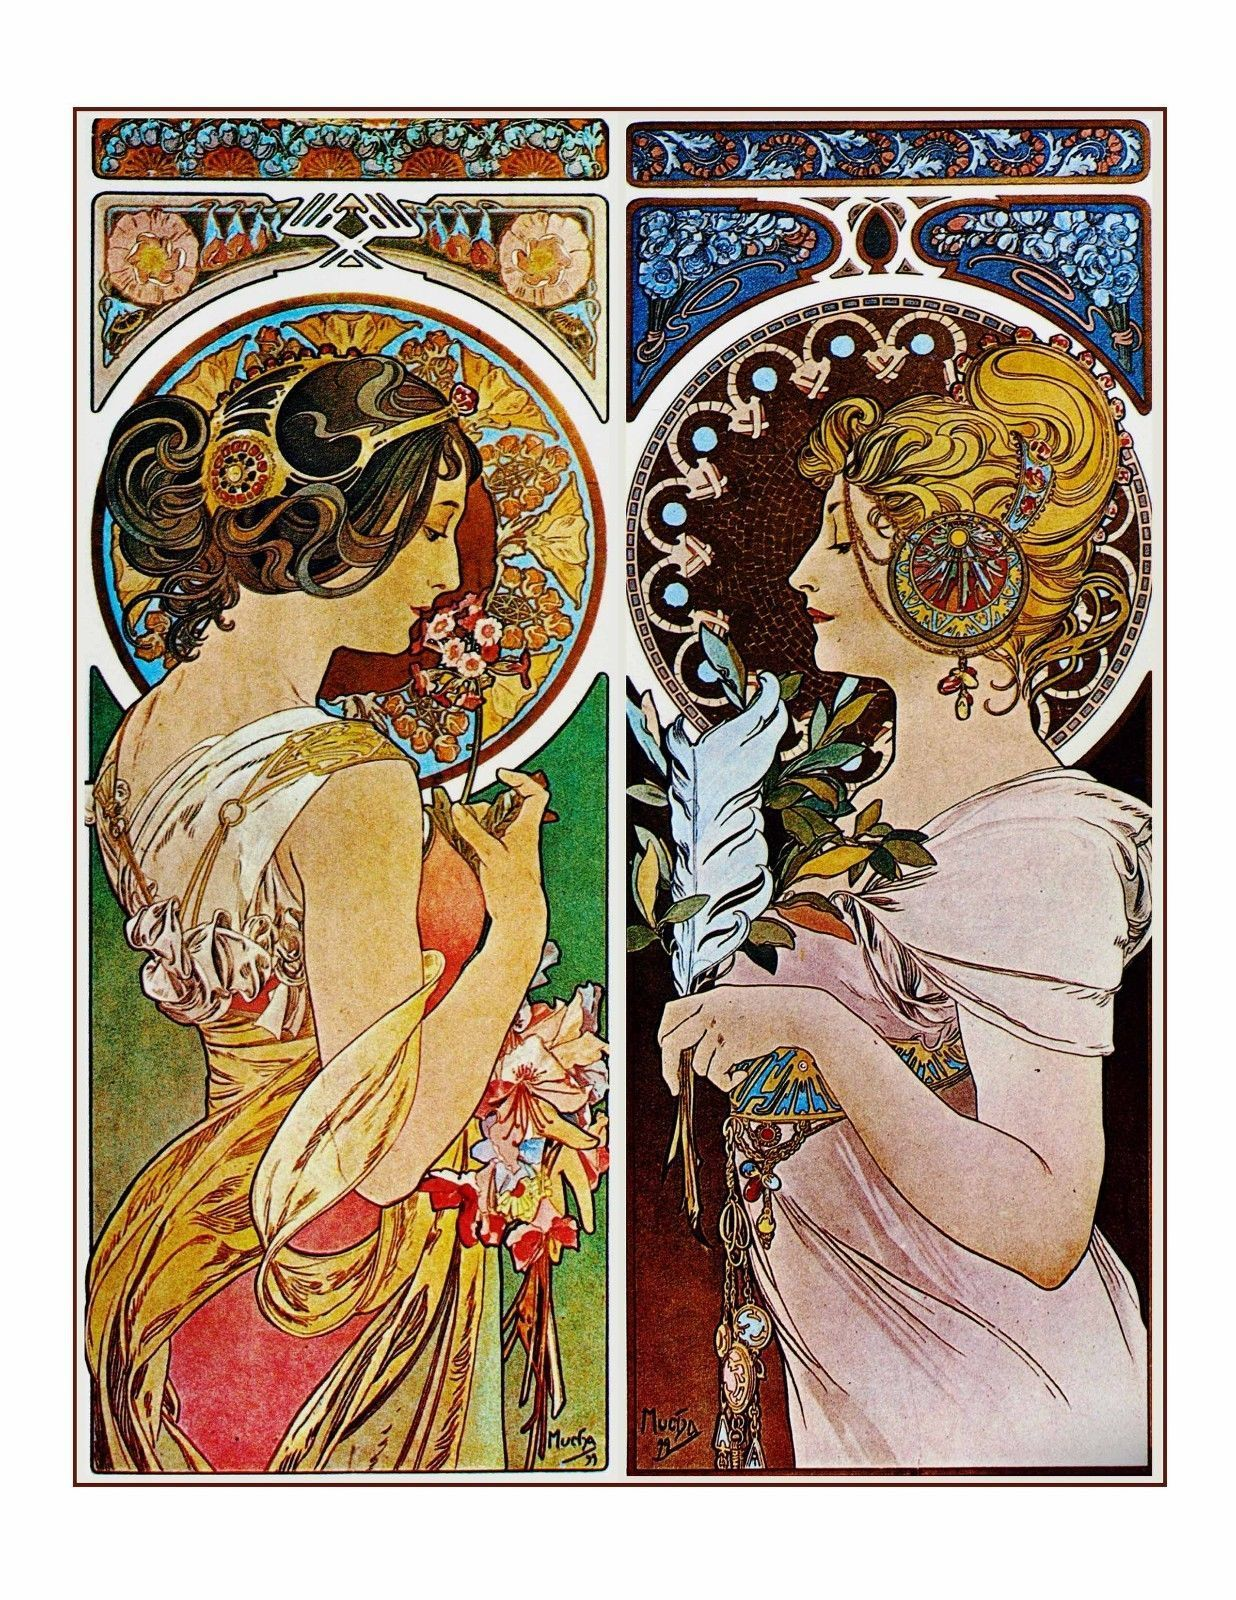 art nouveau alphonse mucha print 2 beautiful woman together love friends 8 x10 is part of Alphonse mucha art - Art Nouveau Alphonse Mucha Print 2 Beautiful Woman Together Love Friends 8 ×10  artNouveau Carteles